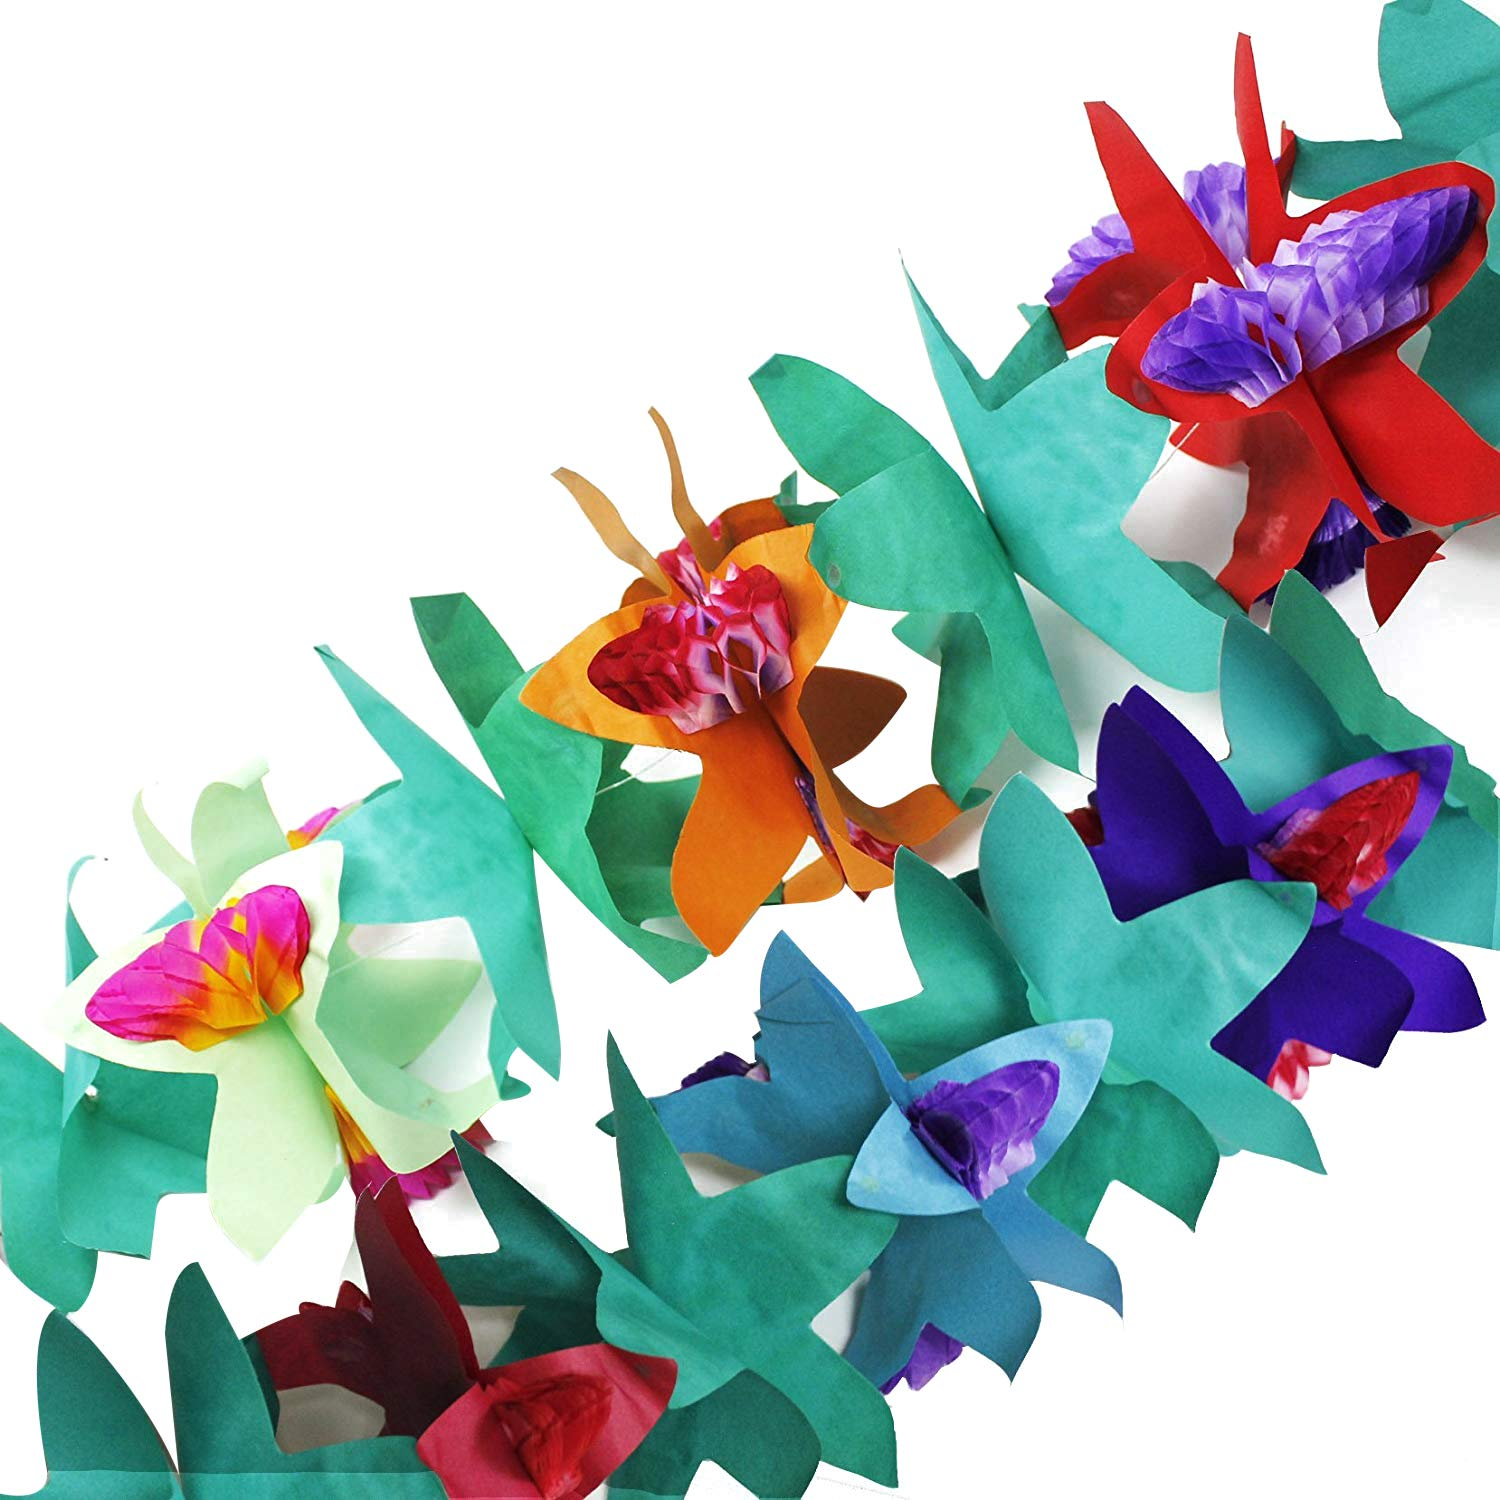 Multicolor Fun Central BC559 1 Piece 7 Inch Tissue Flower Garland Luau Party Decorations Paper Garland Party Decorations Garland Party Garland Holiday Garland Fake Flowers Flower Decor